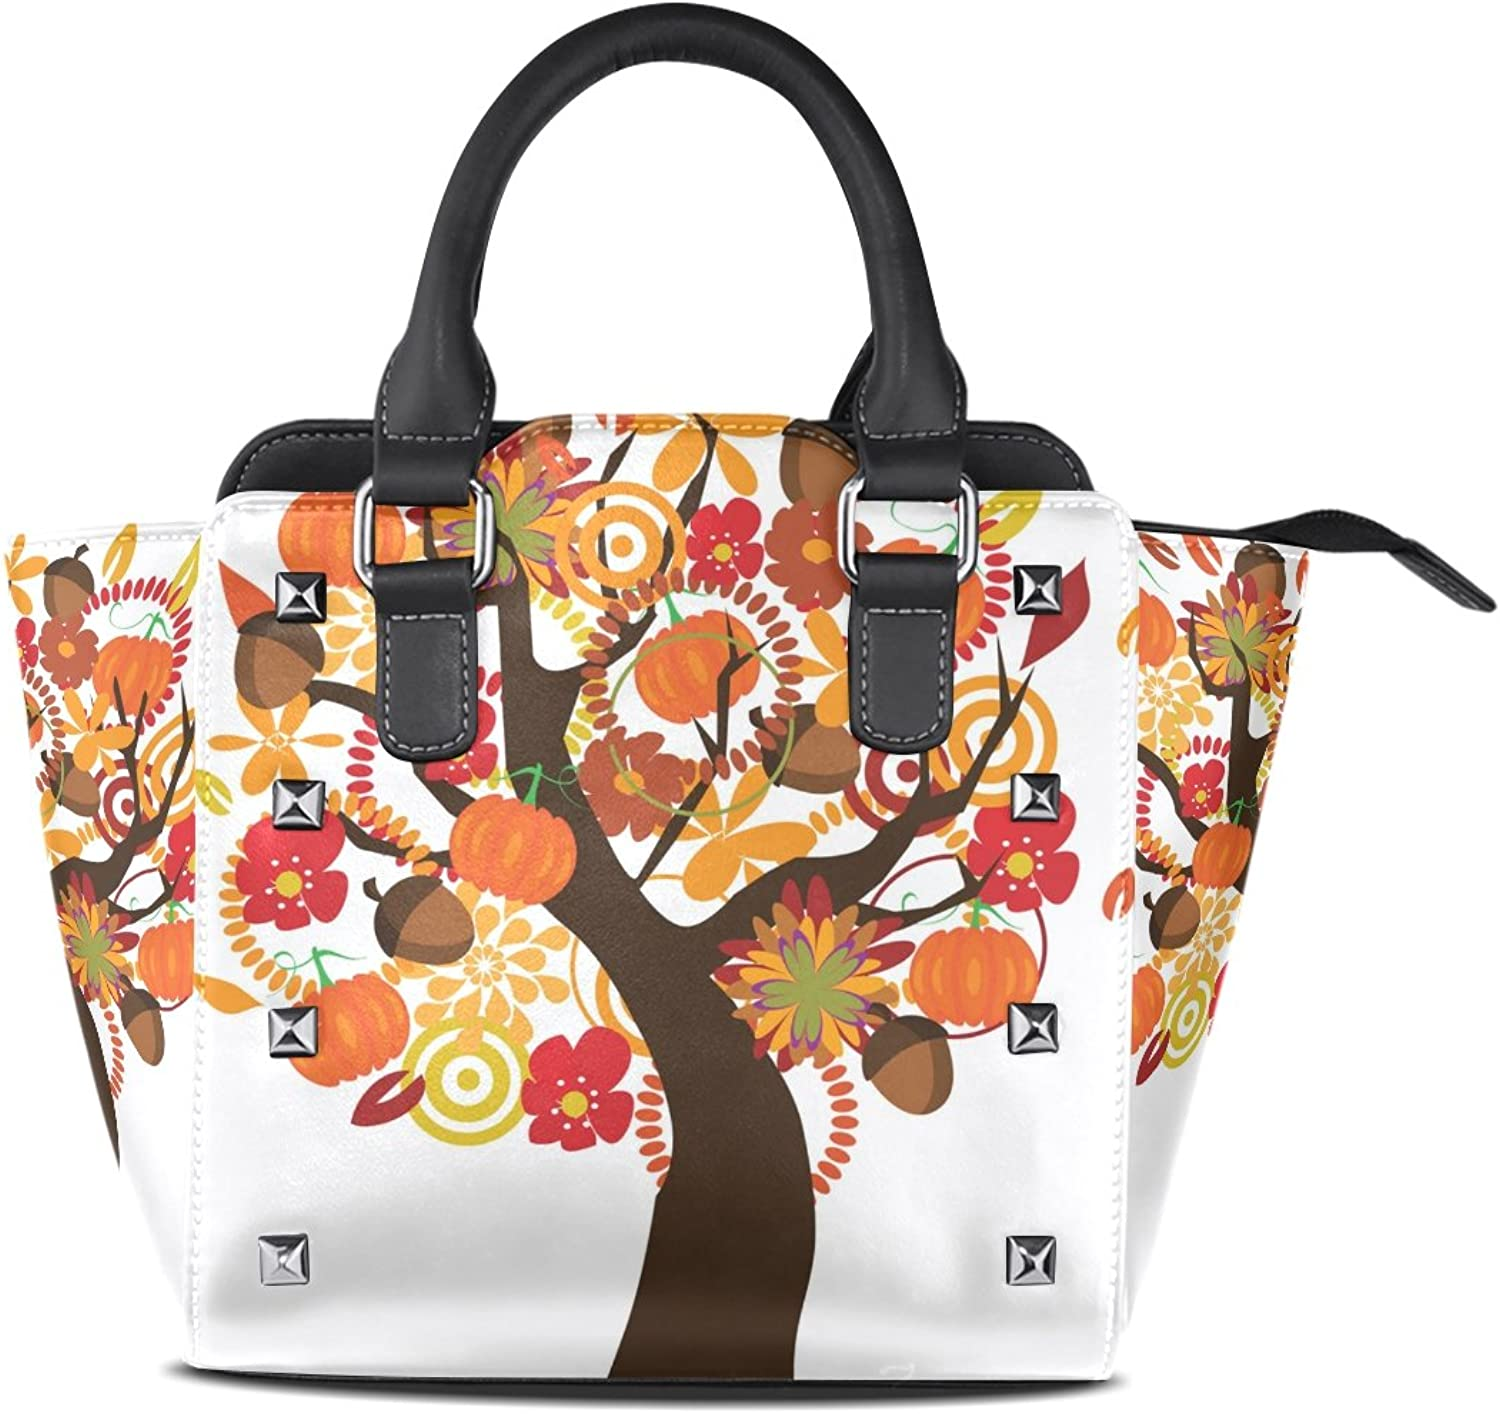 My Little Nest Women's Top Handle Satchel Handbag Thanksgiving Autumn Pumpkin Tree Ladies PU Leather Shoulder Bag Crossbody Bag